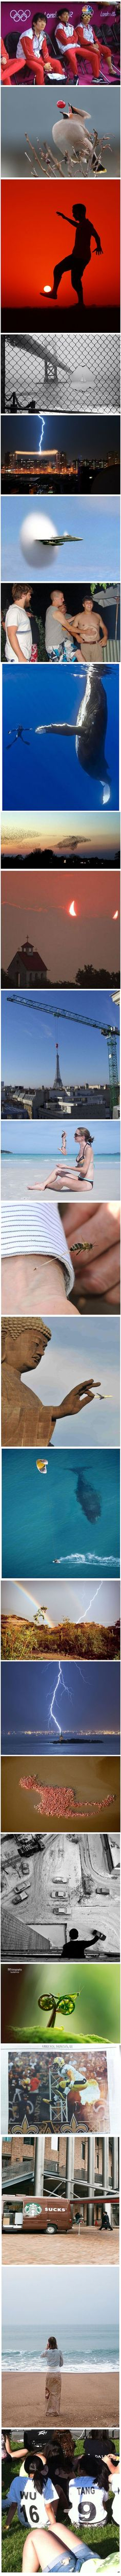 It is all in the timing – Perfectly Timed Pictures